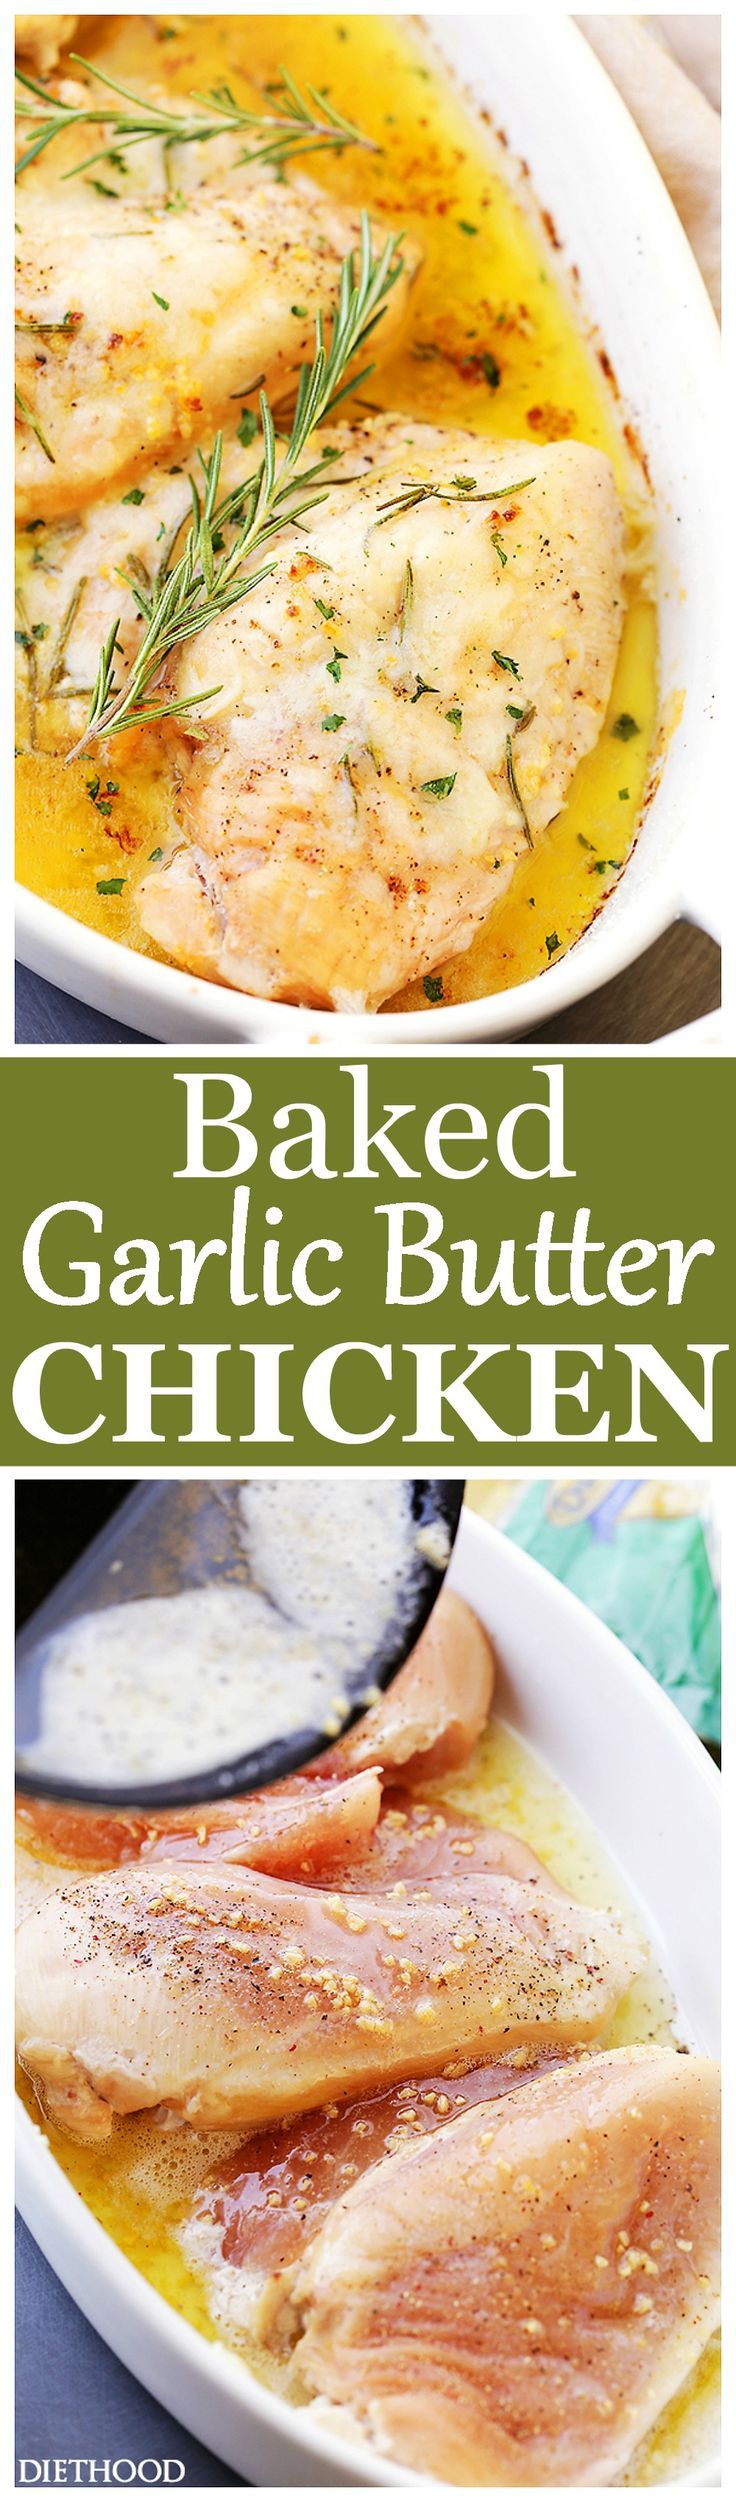 Baked Garlic Butter Chicken - Super quick, easy and SO delicious Garlic Butter Chicken with fresh rosemary and cheese. The perfect one pan dish for a weeknight!